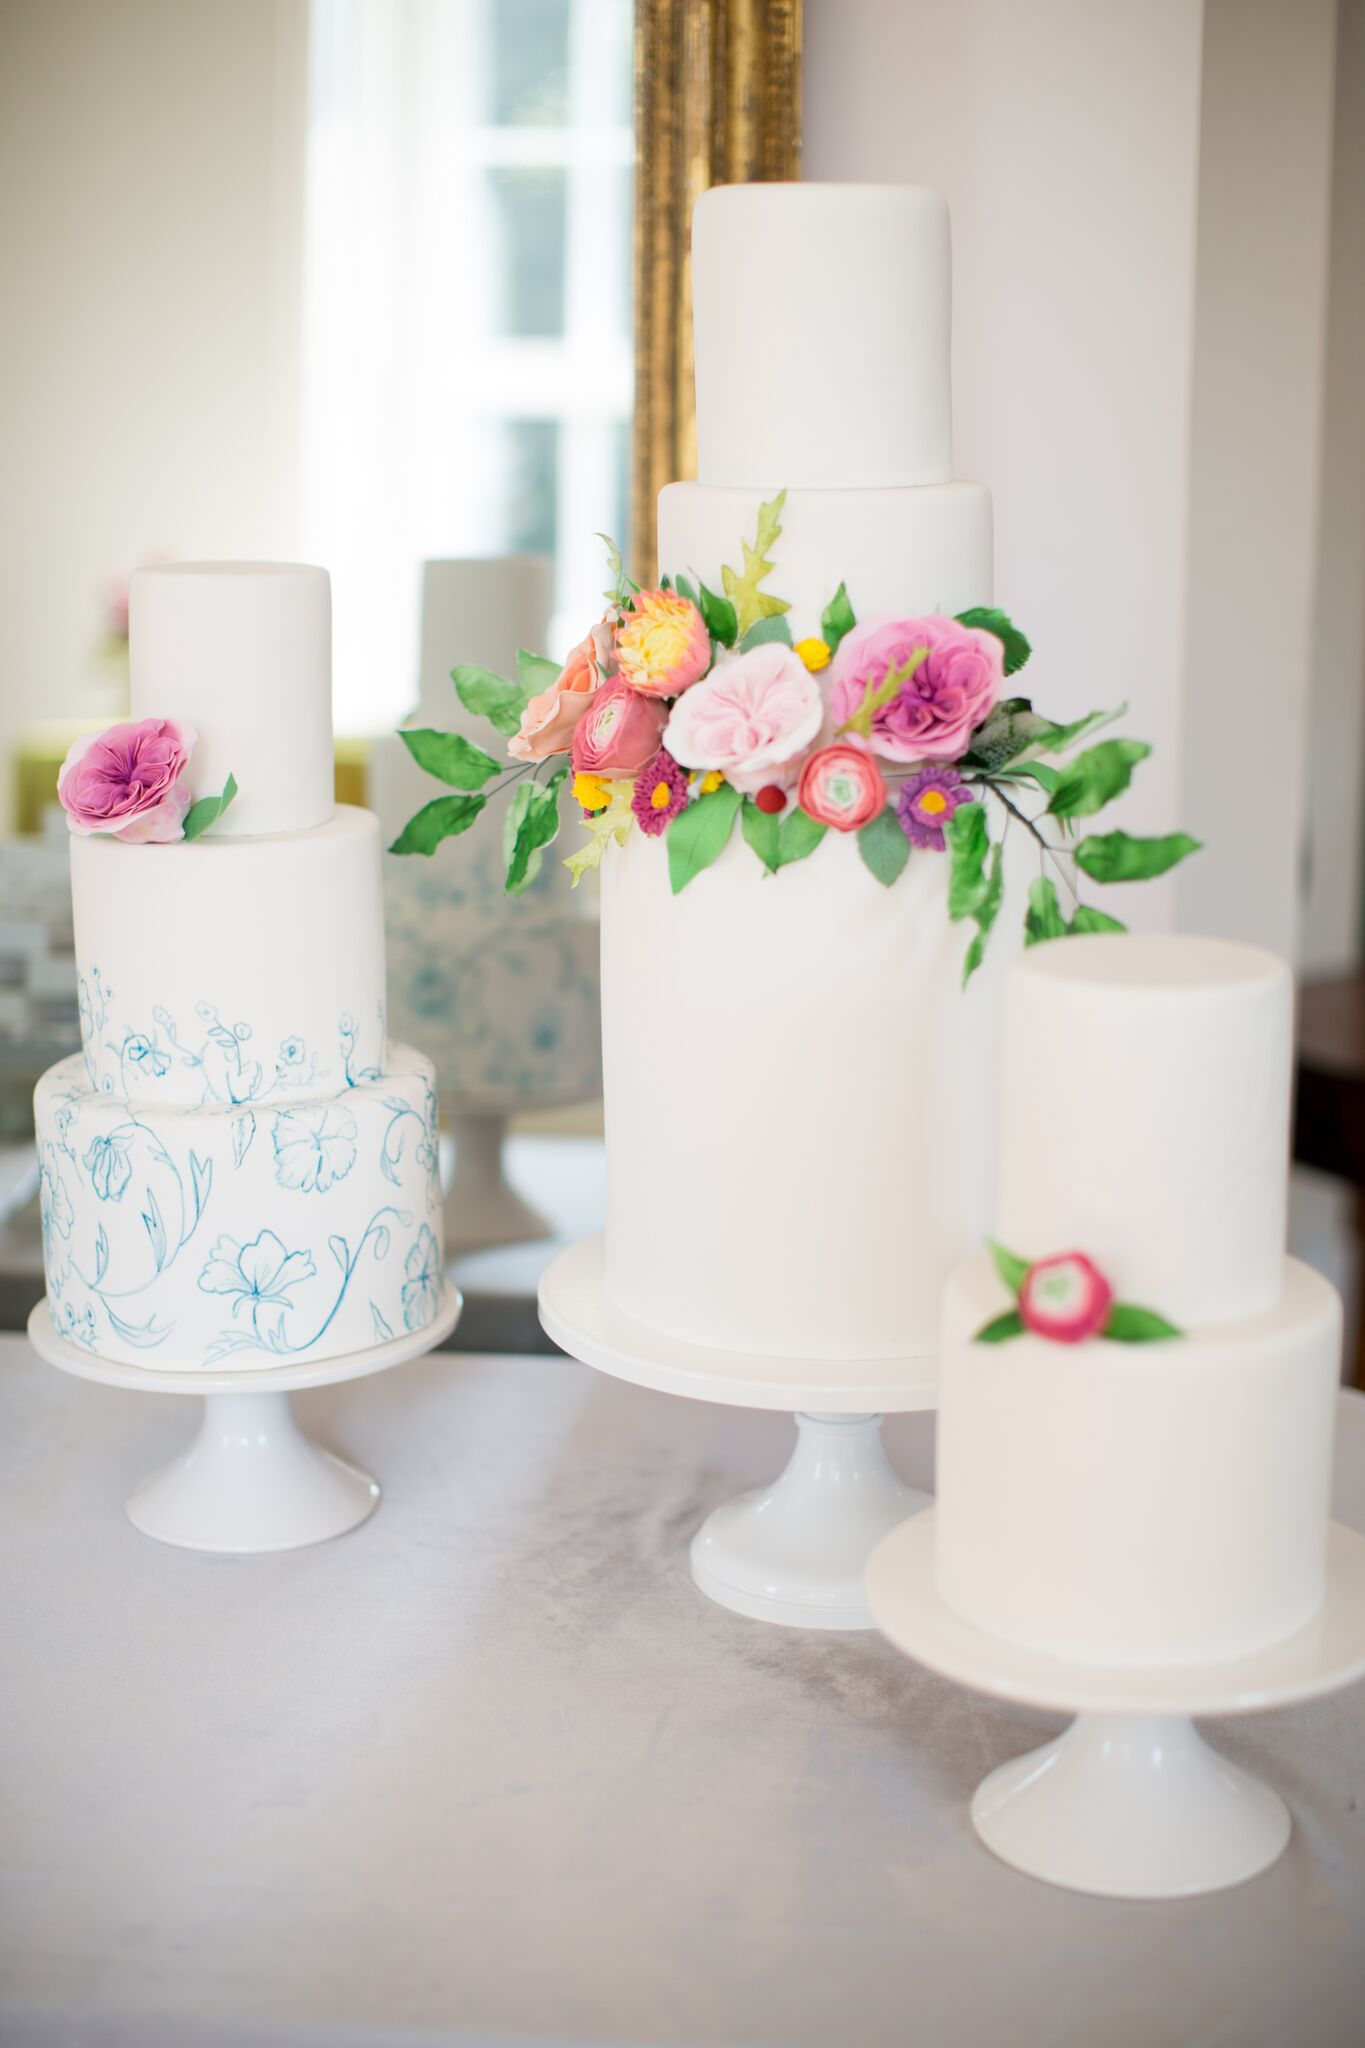 C & D EVENTS    THE CUPCAKE SHOPPE BAKERY    PARTY REFLECTIONS    KATHERINE MILES JONES PHOTOGRAPHY